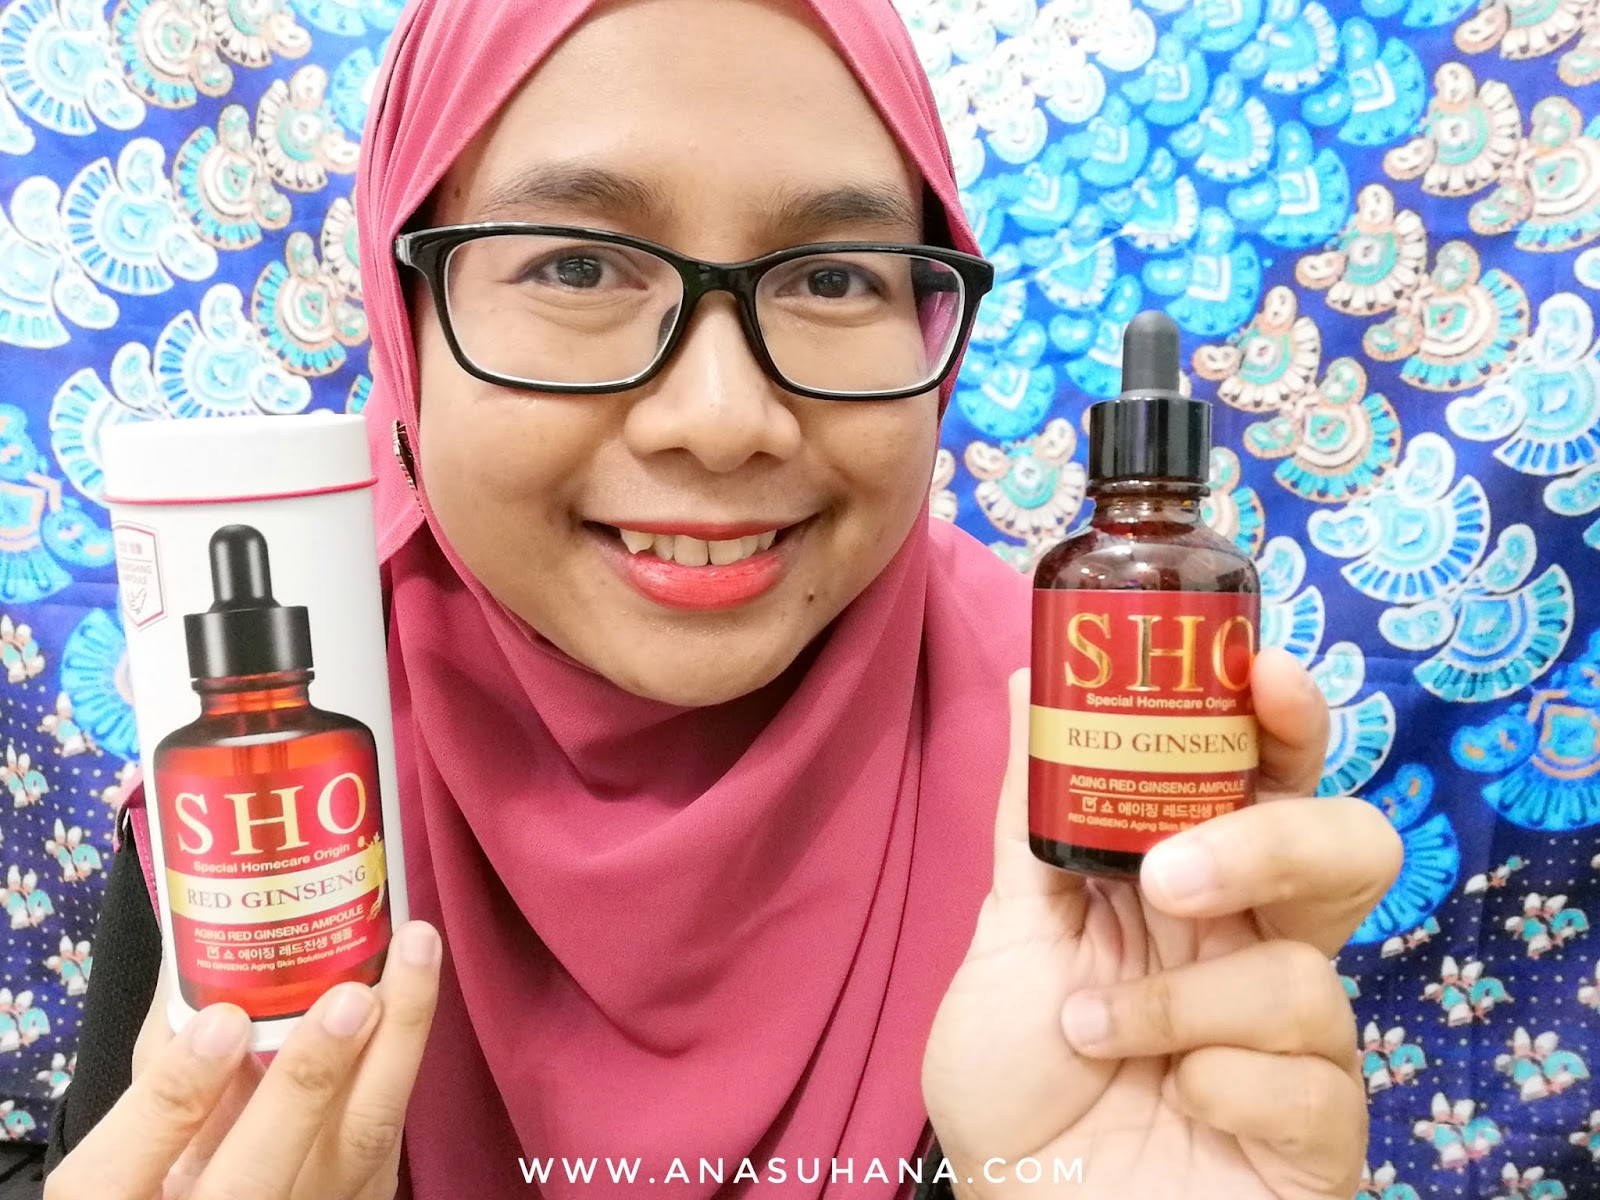 SHO Aging Red Ginseng Ampoule & Ampoule Mask